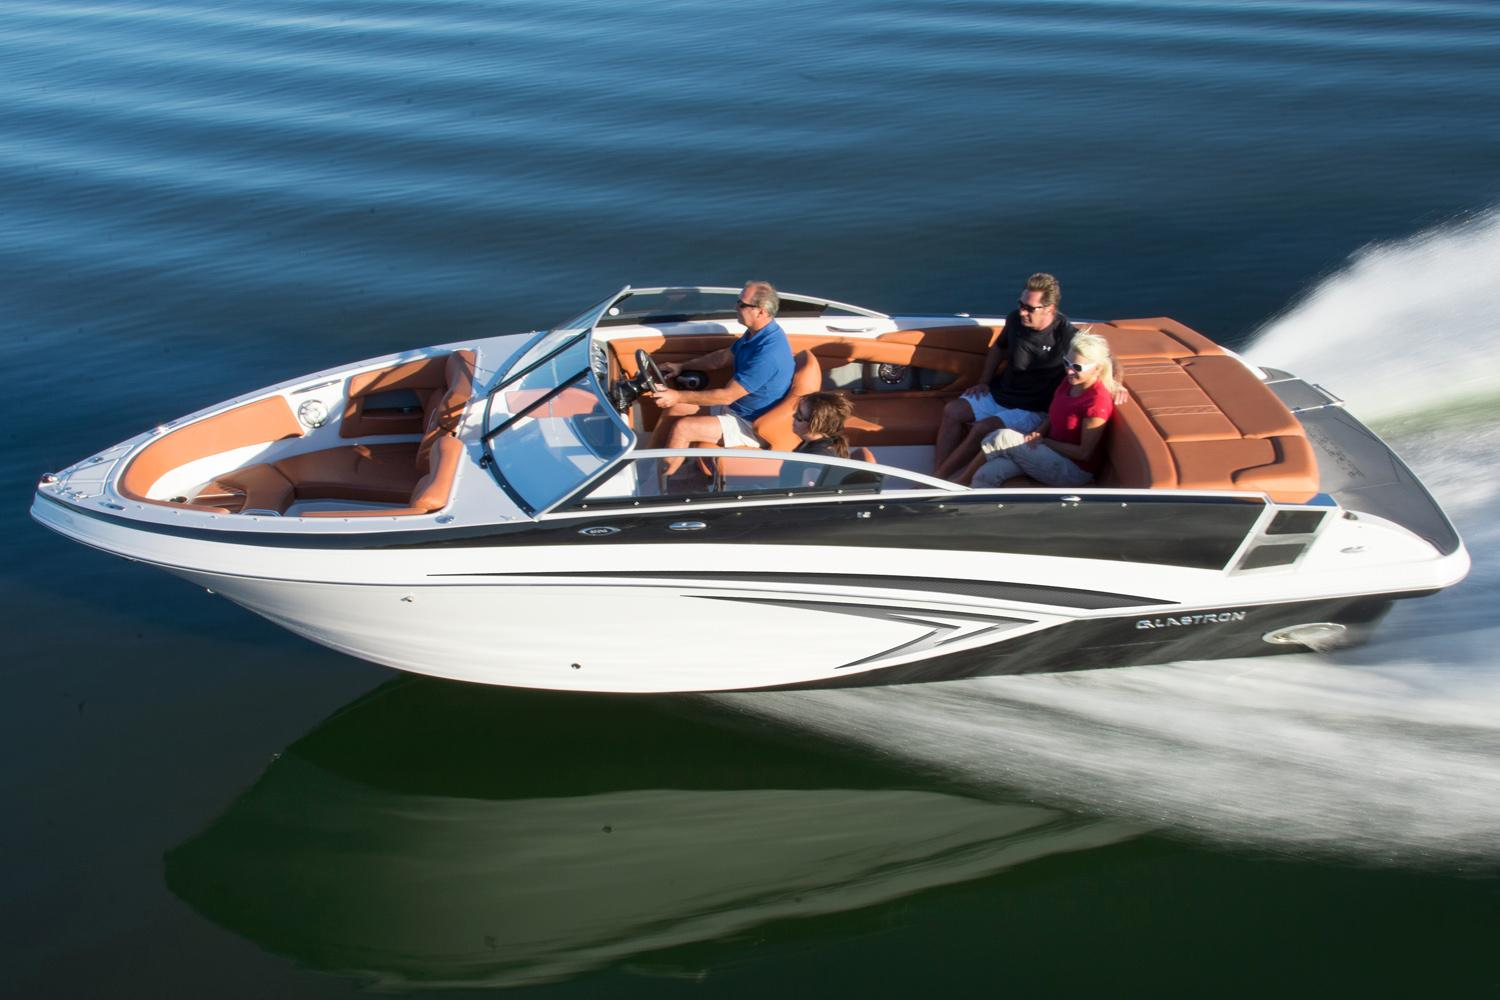 2018 glastron gt 245 power boat for sale www yachtworld com rh yachtworld com Glastron Boat Parts Glastron Boat Parts